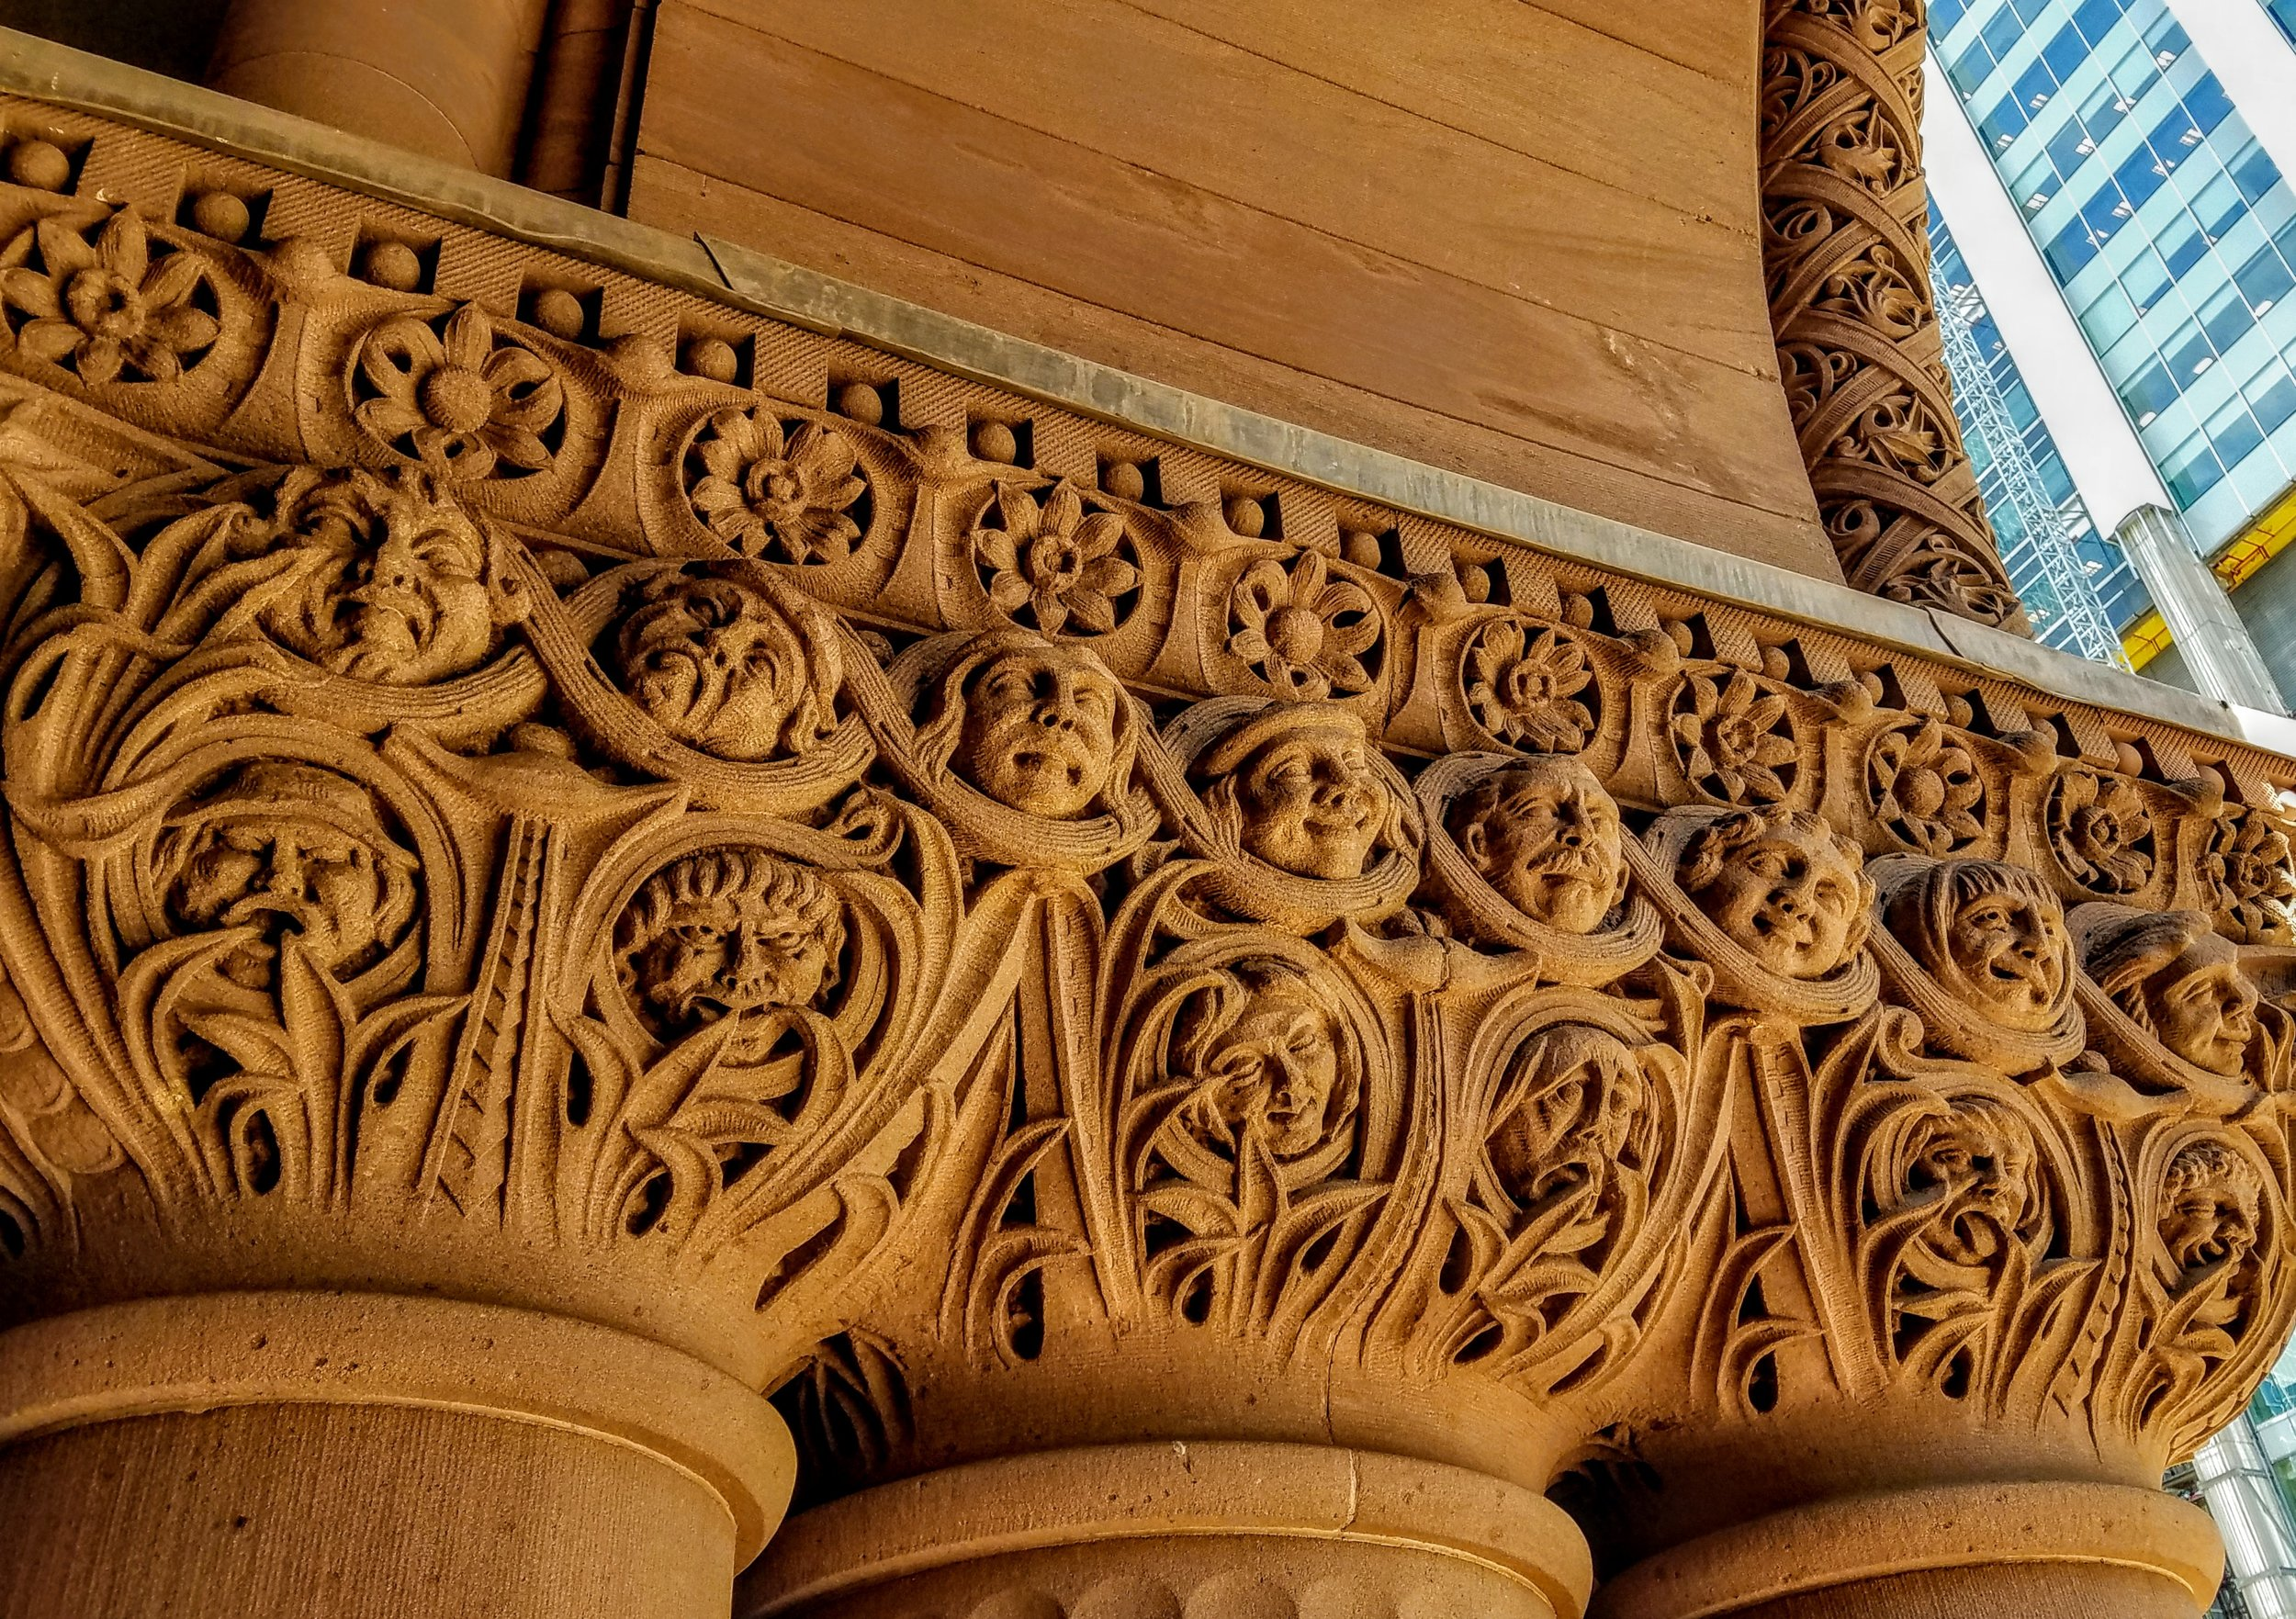 These sandstone carvings look so similar to the carvings in the Albany NY City Hall